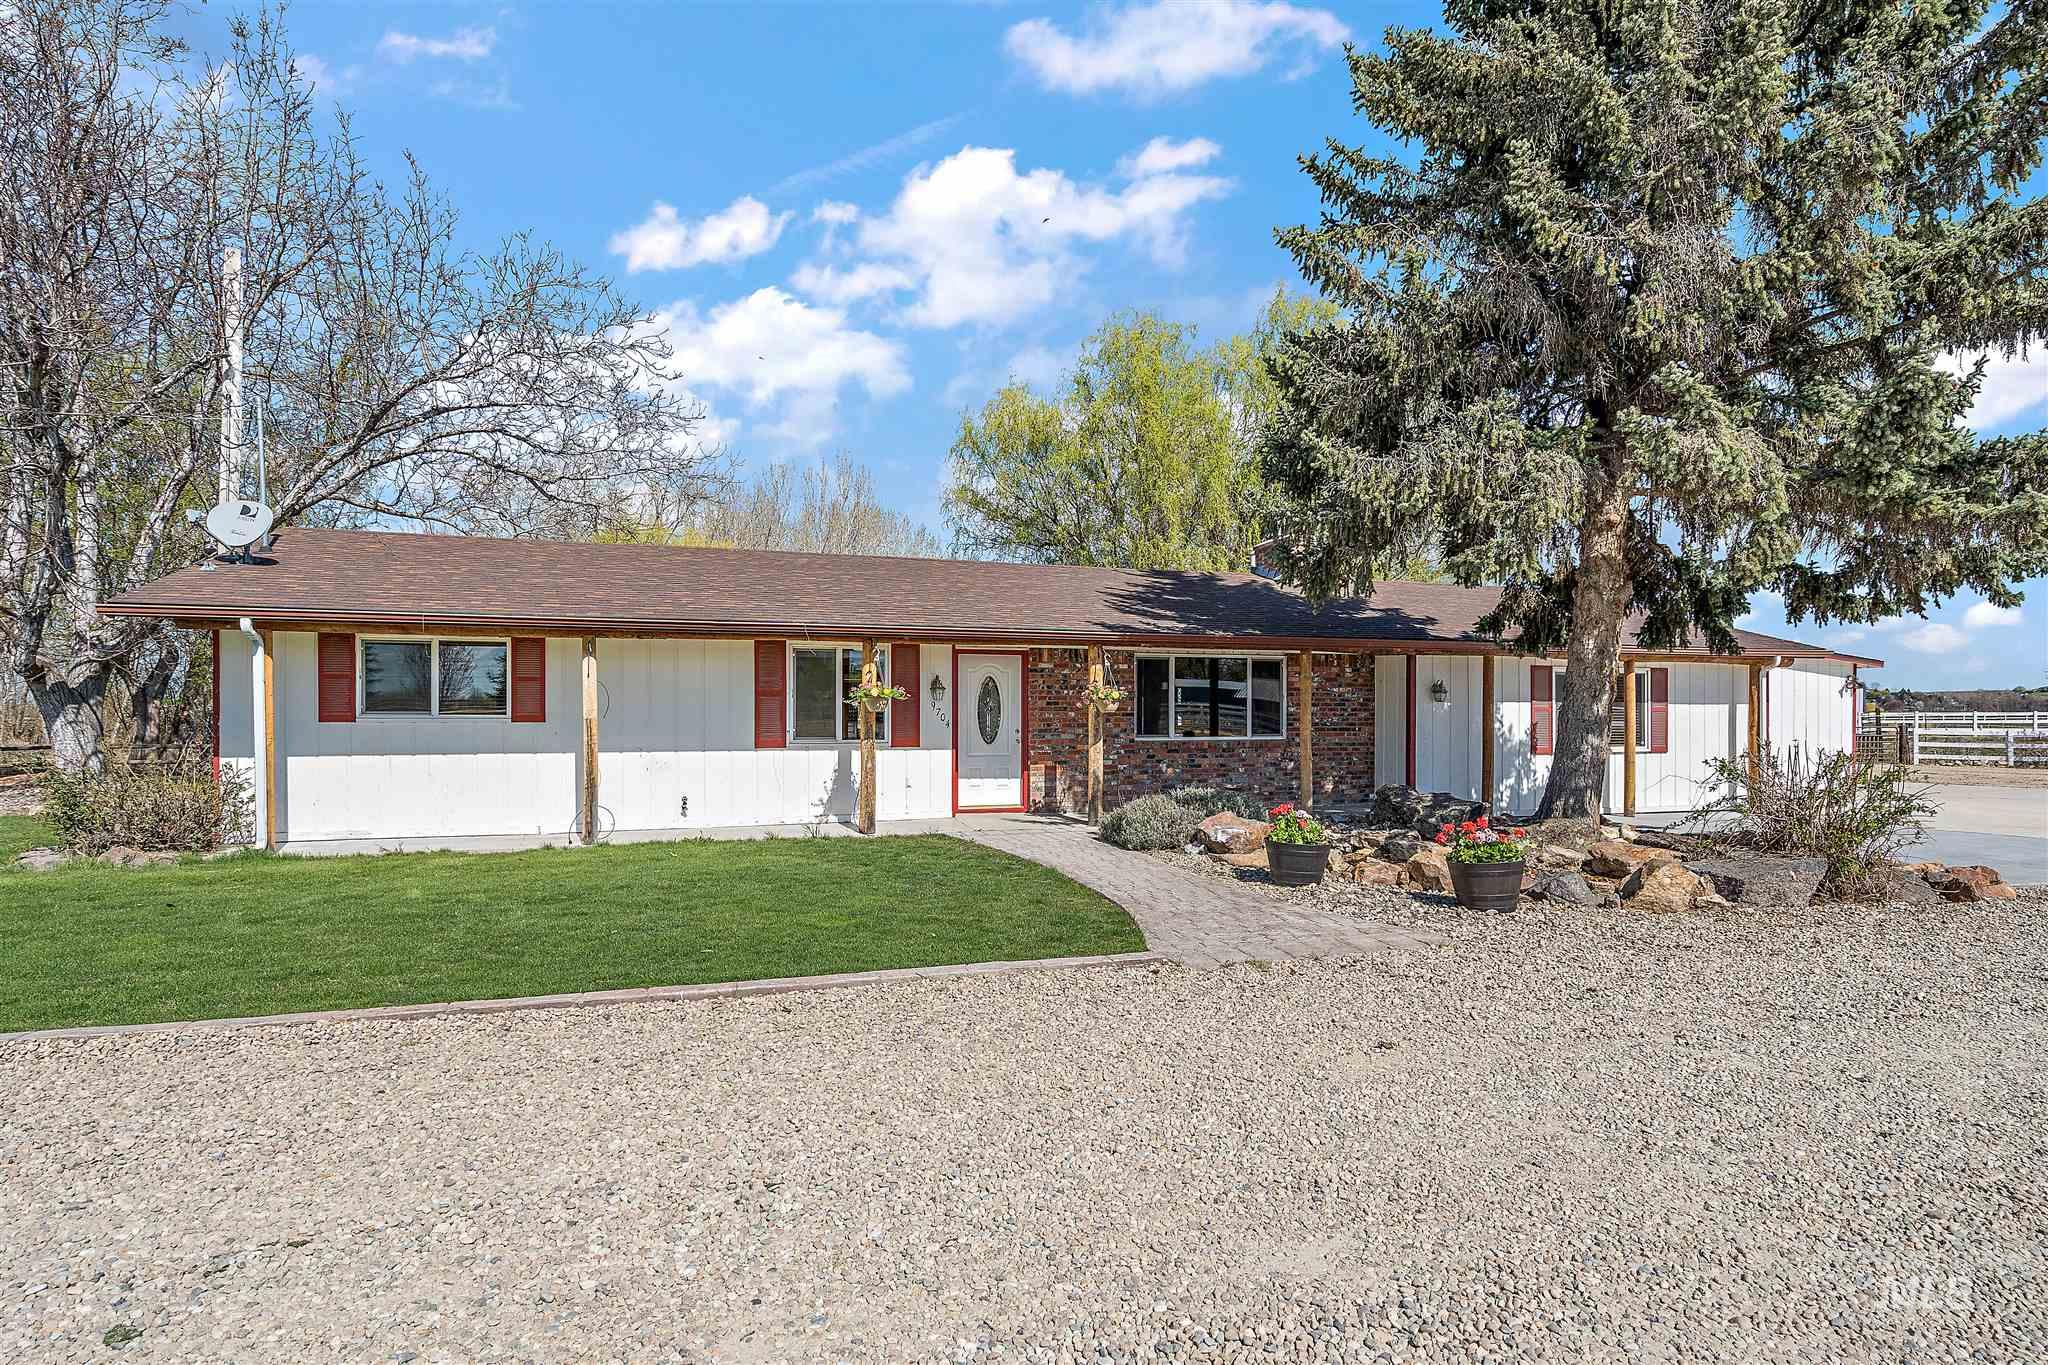 9704 HIGHWAY 44 Property Photo - Middleton, ID real estate listing